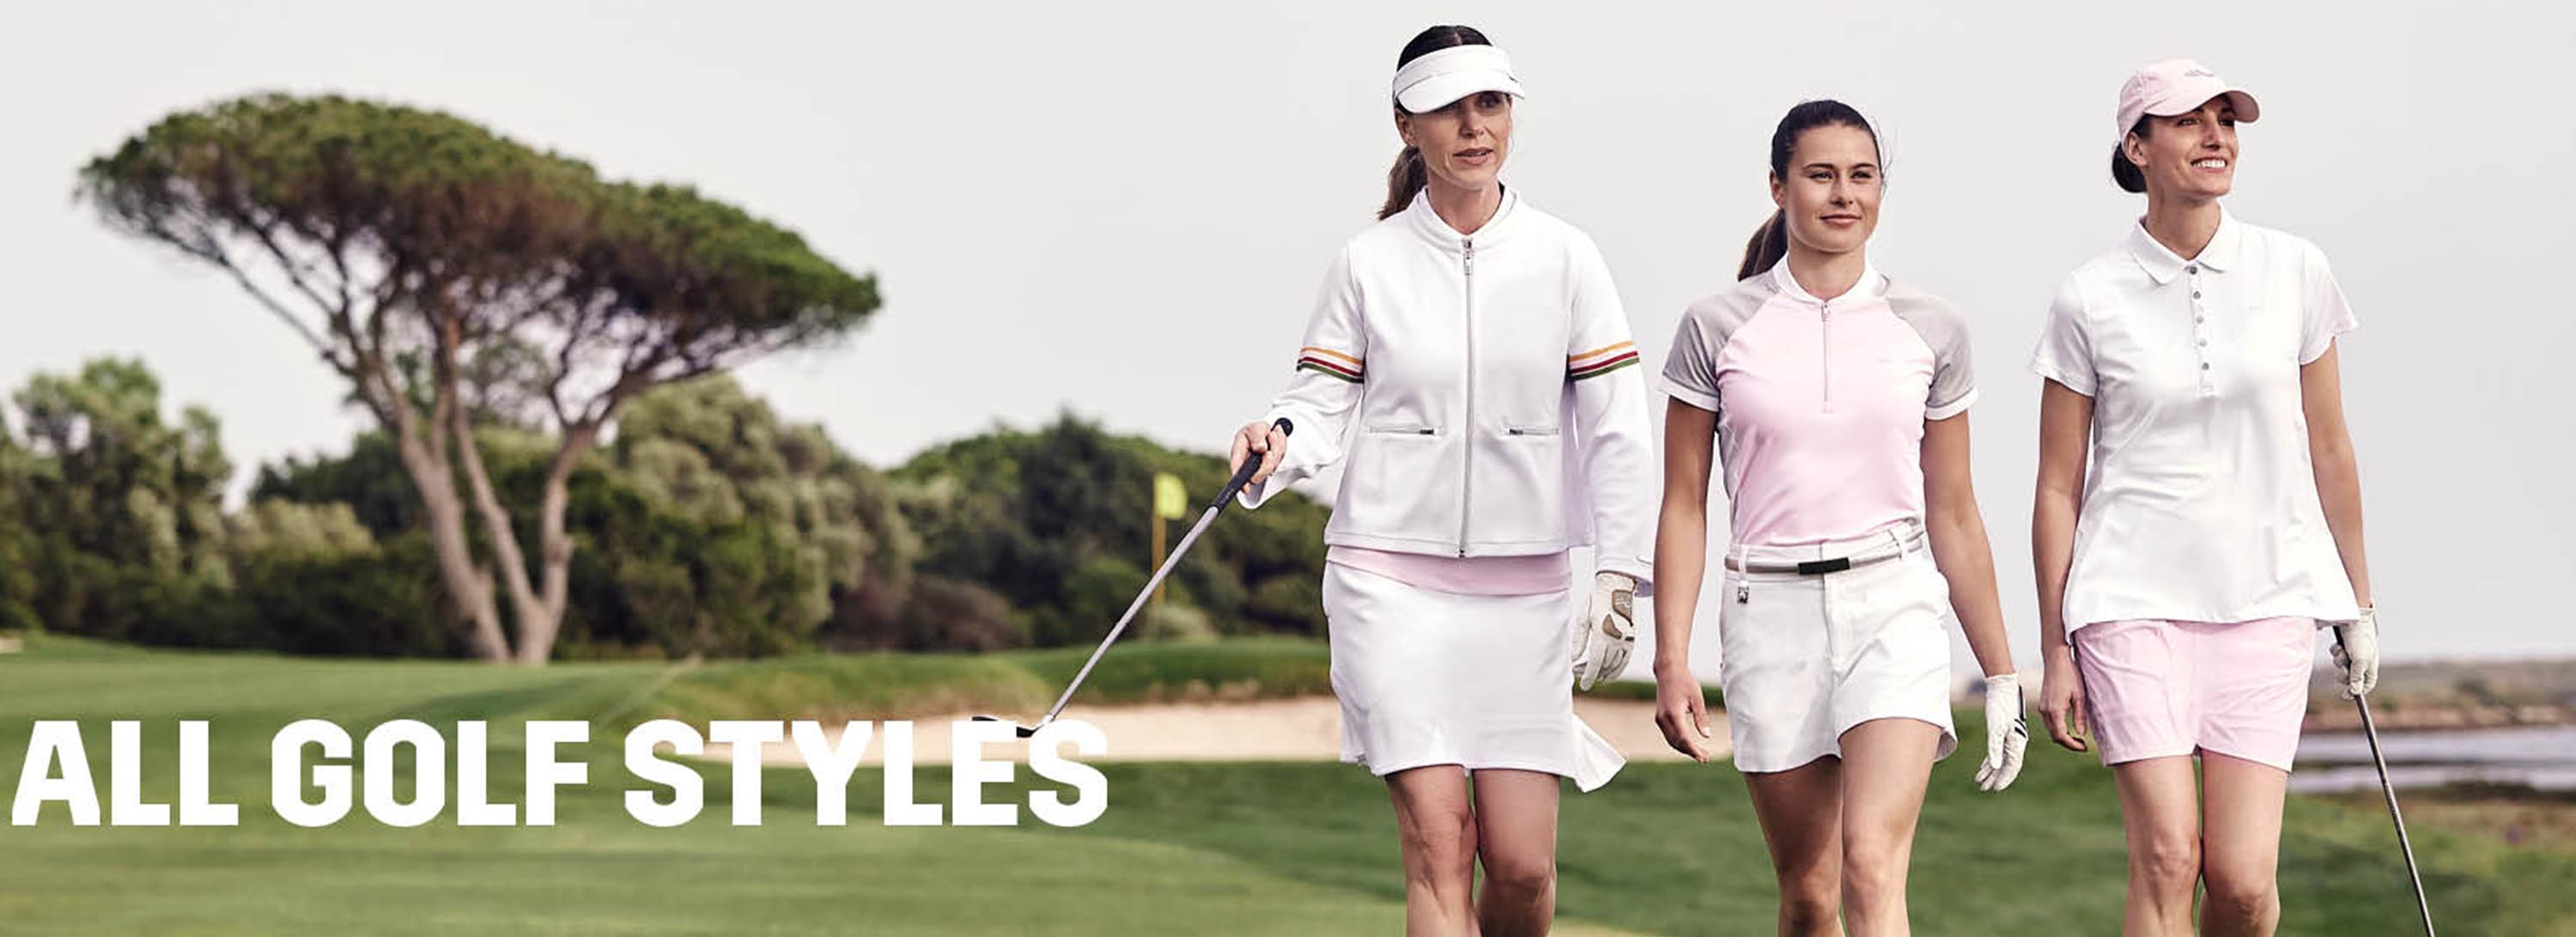 article-blog-golfy-rohnisch-1 Vêtement Golf Femme Rohnisch : Collection Printemps/Été 2018